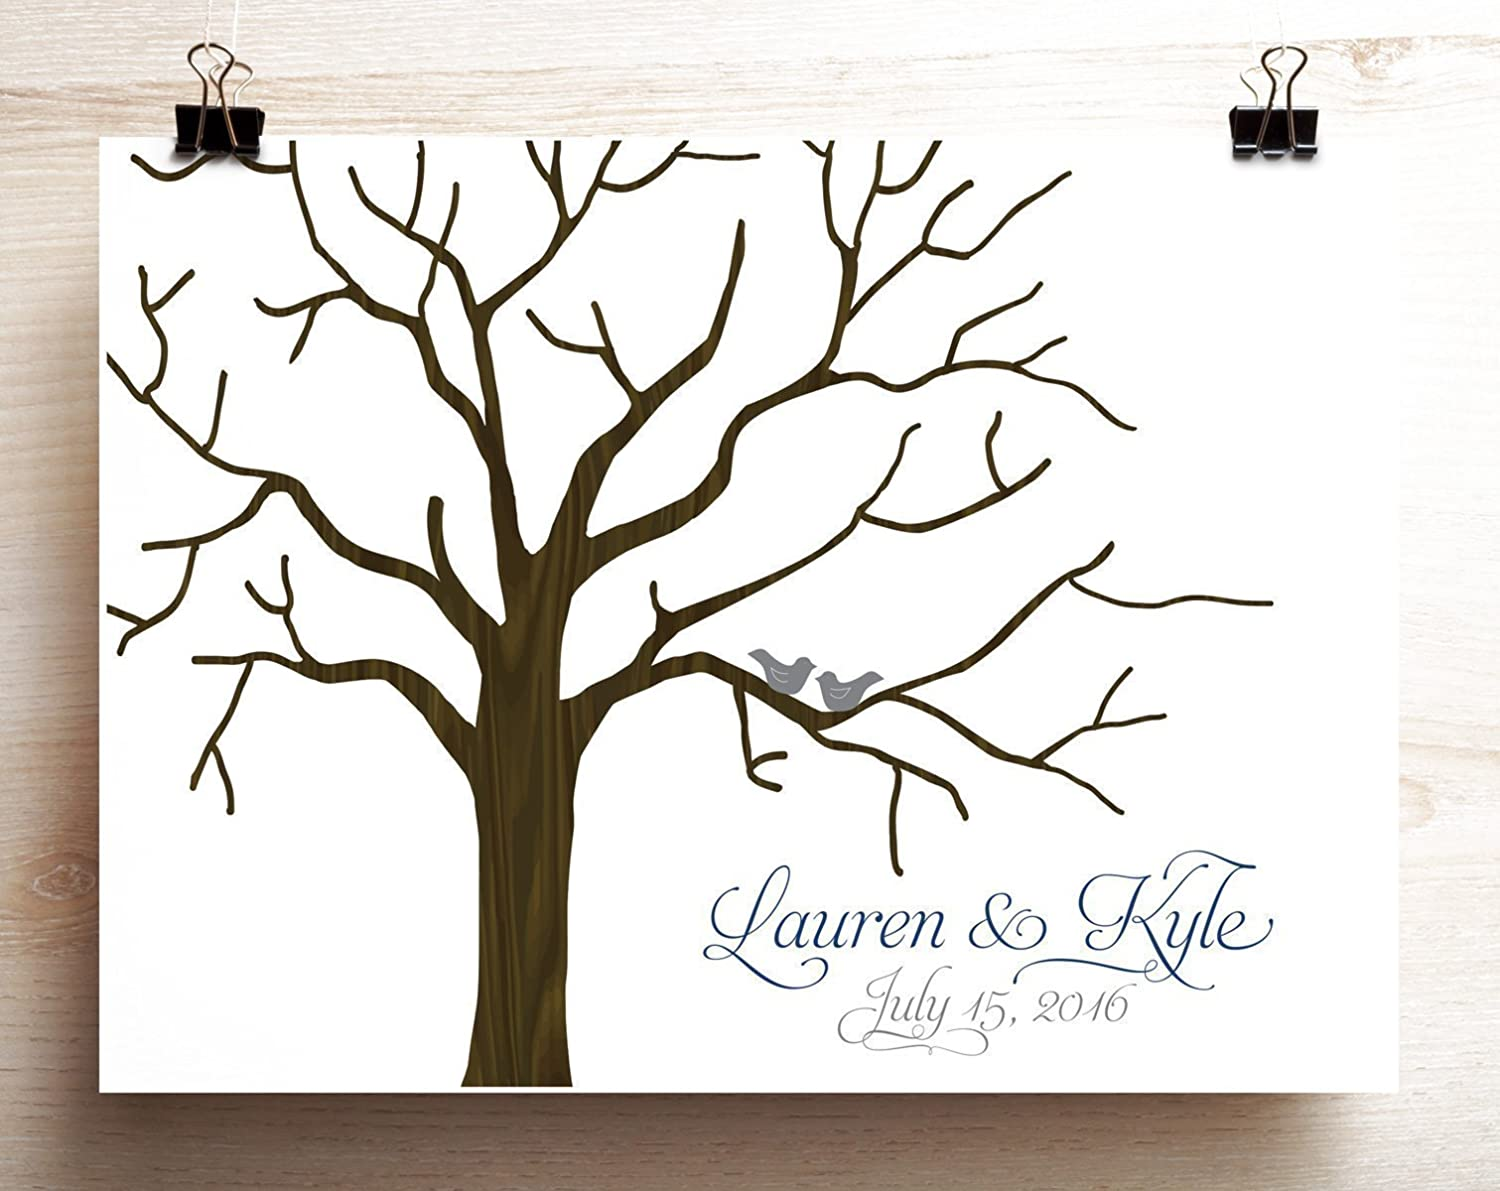 Wedding tree guest book alternative Woodgrain look wedding tree poster with lovebirds on branches